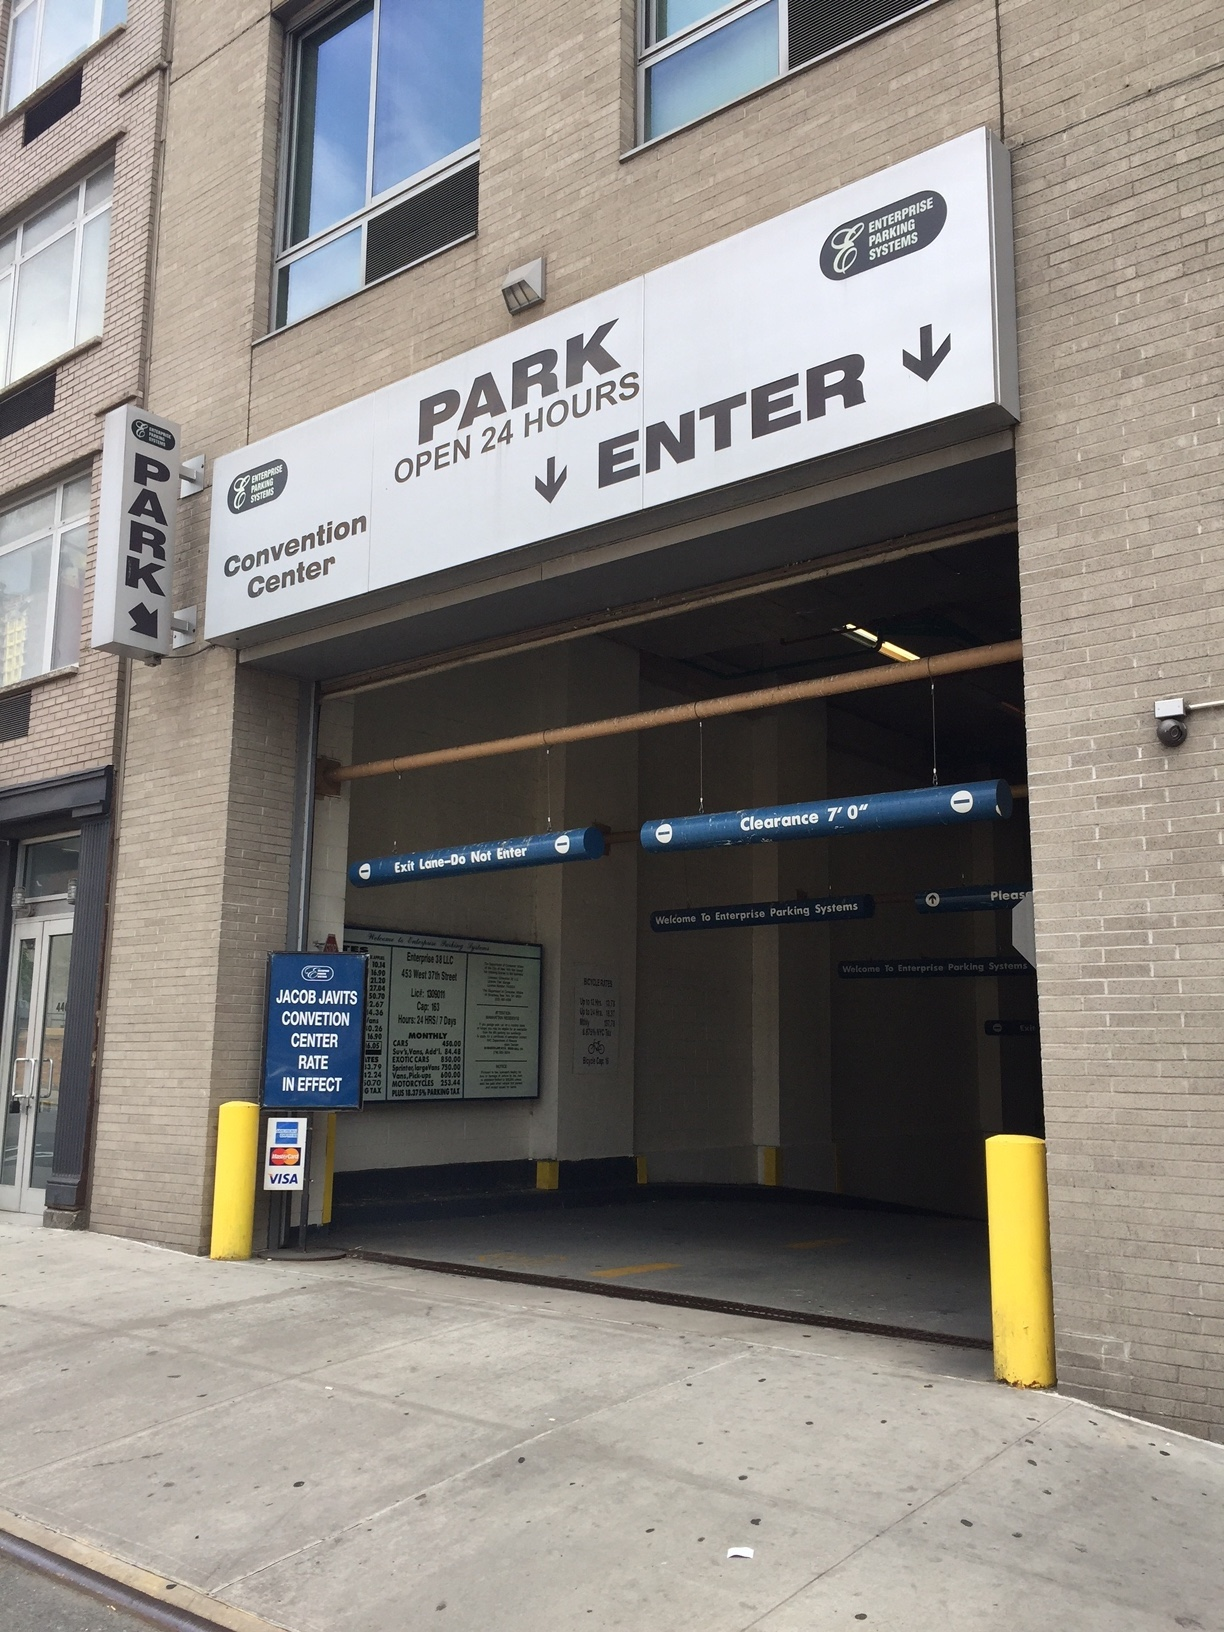 Cheapest parking garage near rockefeller center dandk organizer - Parking garage near my location ...